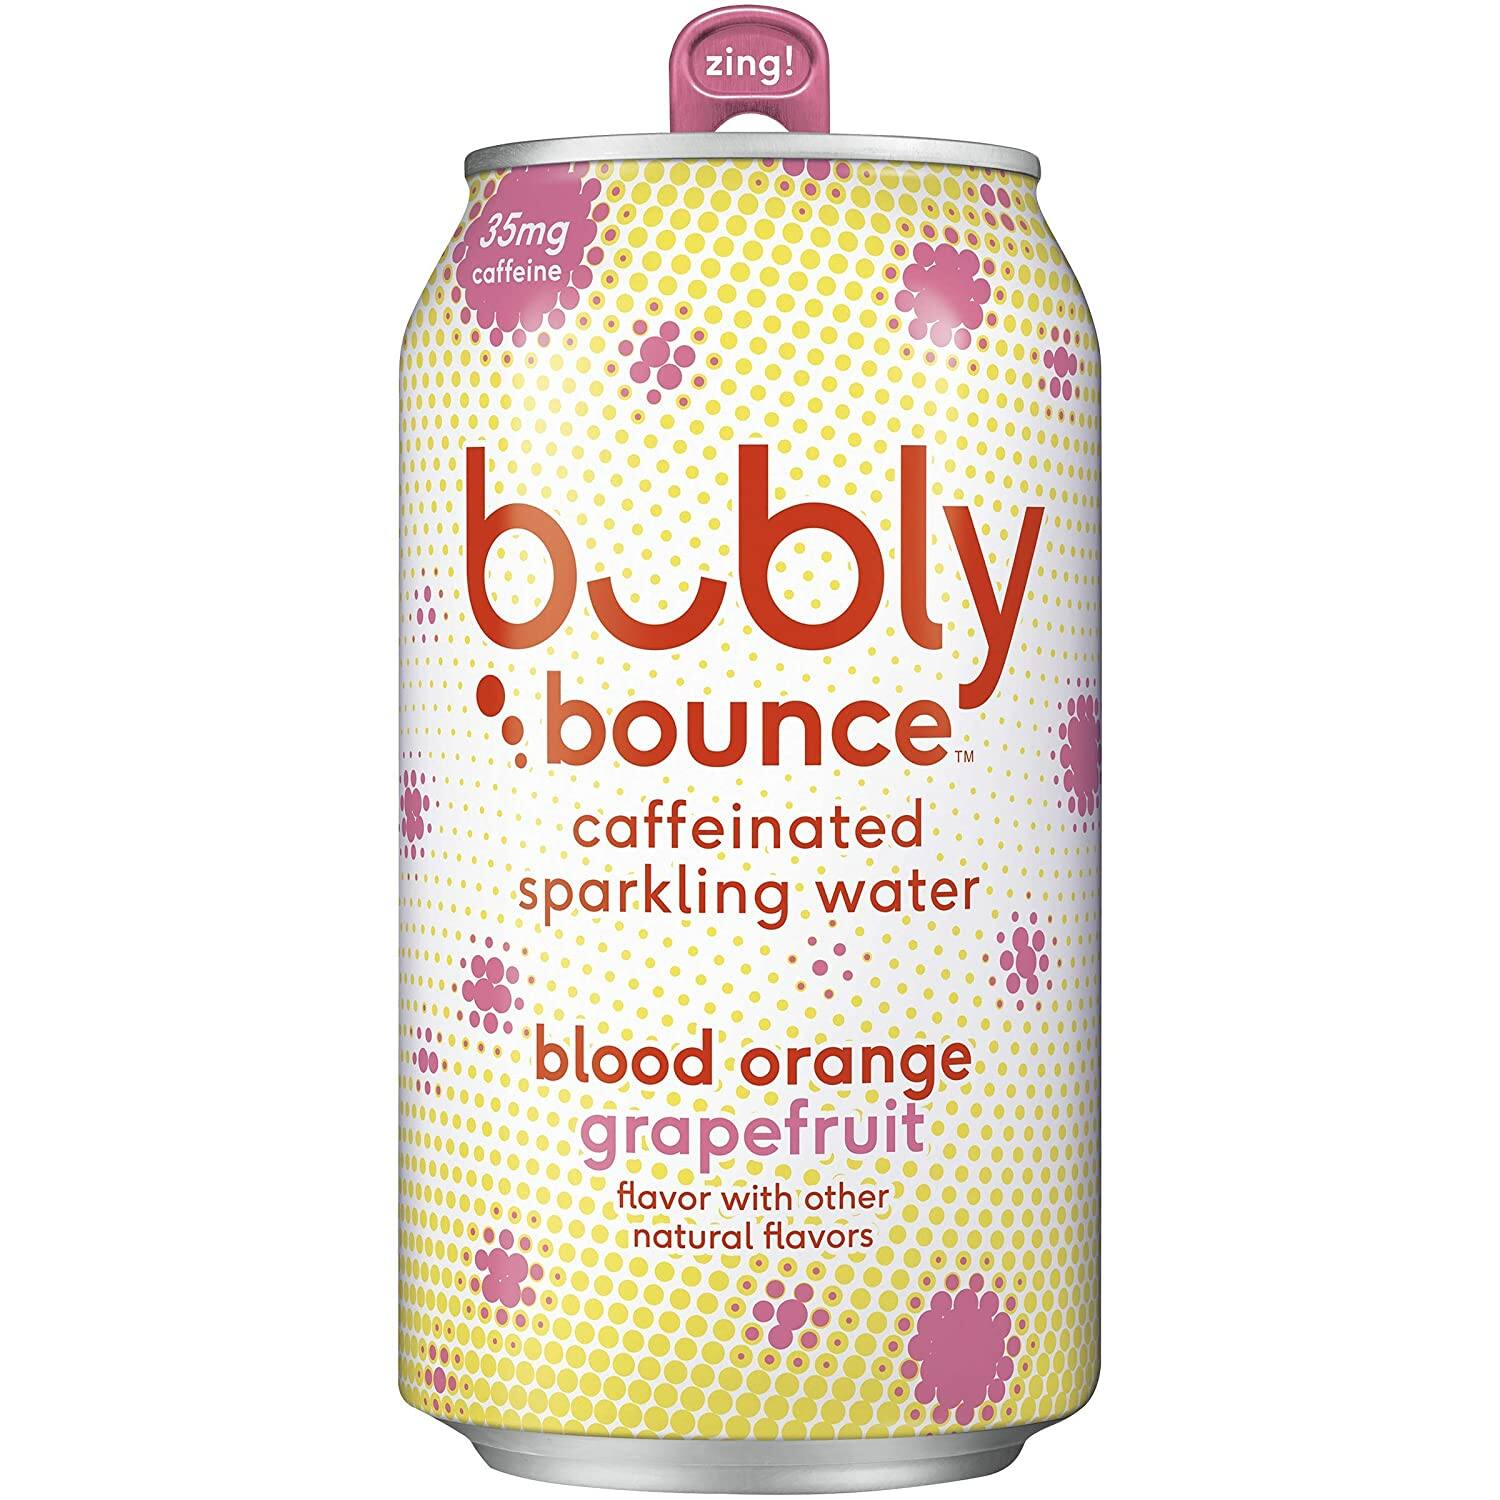 Bubly Bounce Caffeinated Sparkling Water (Blood Orange Grapefruit) , 12oz Cans (18 Pack) w/ Prime $7.61